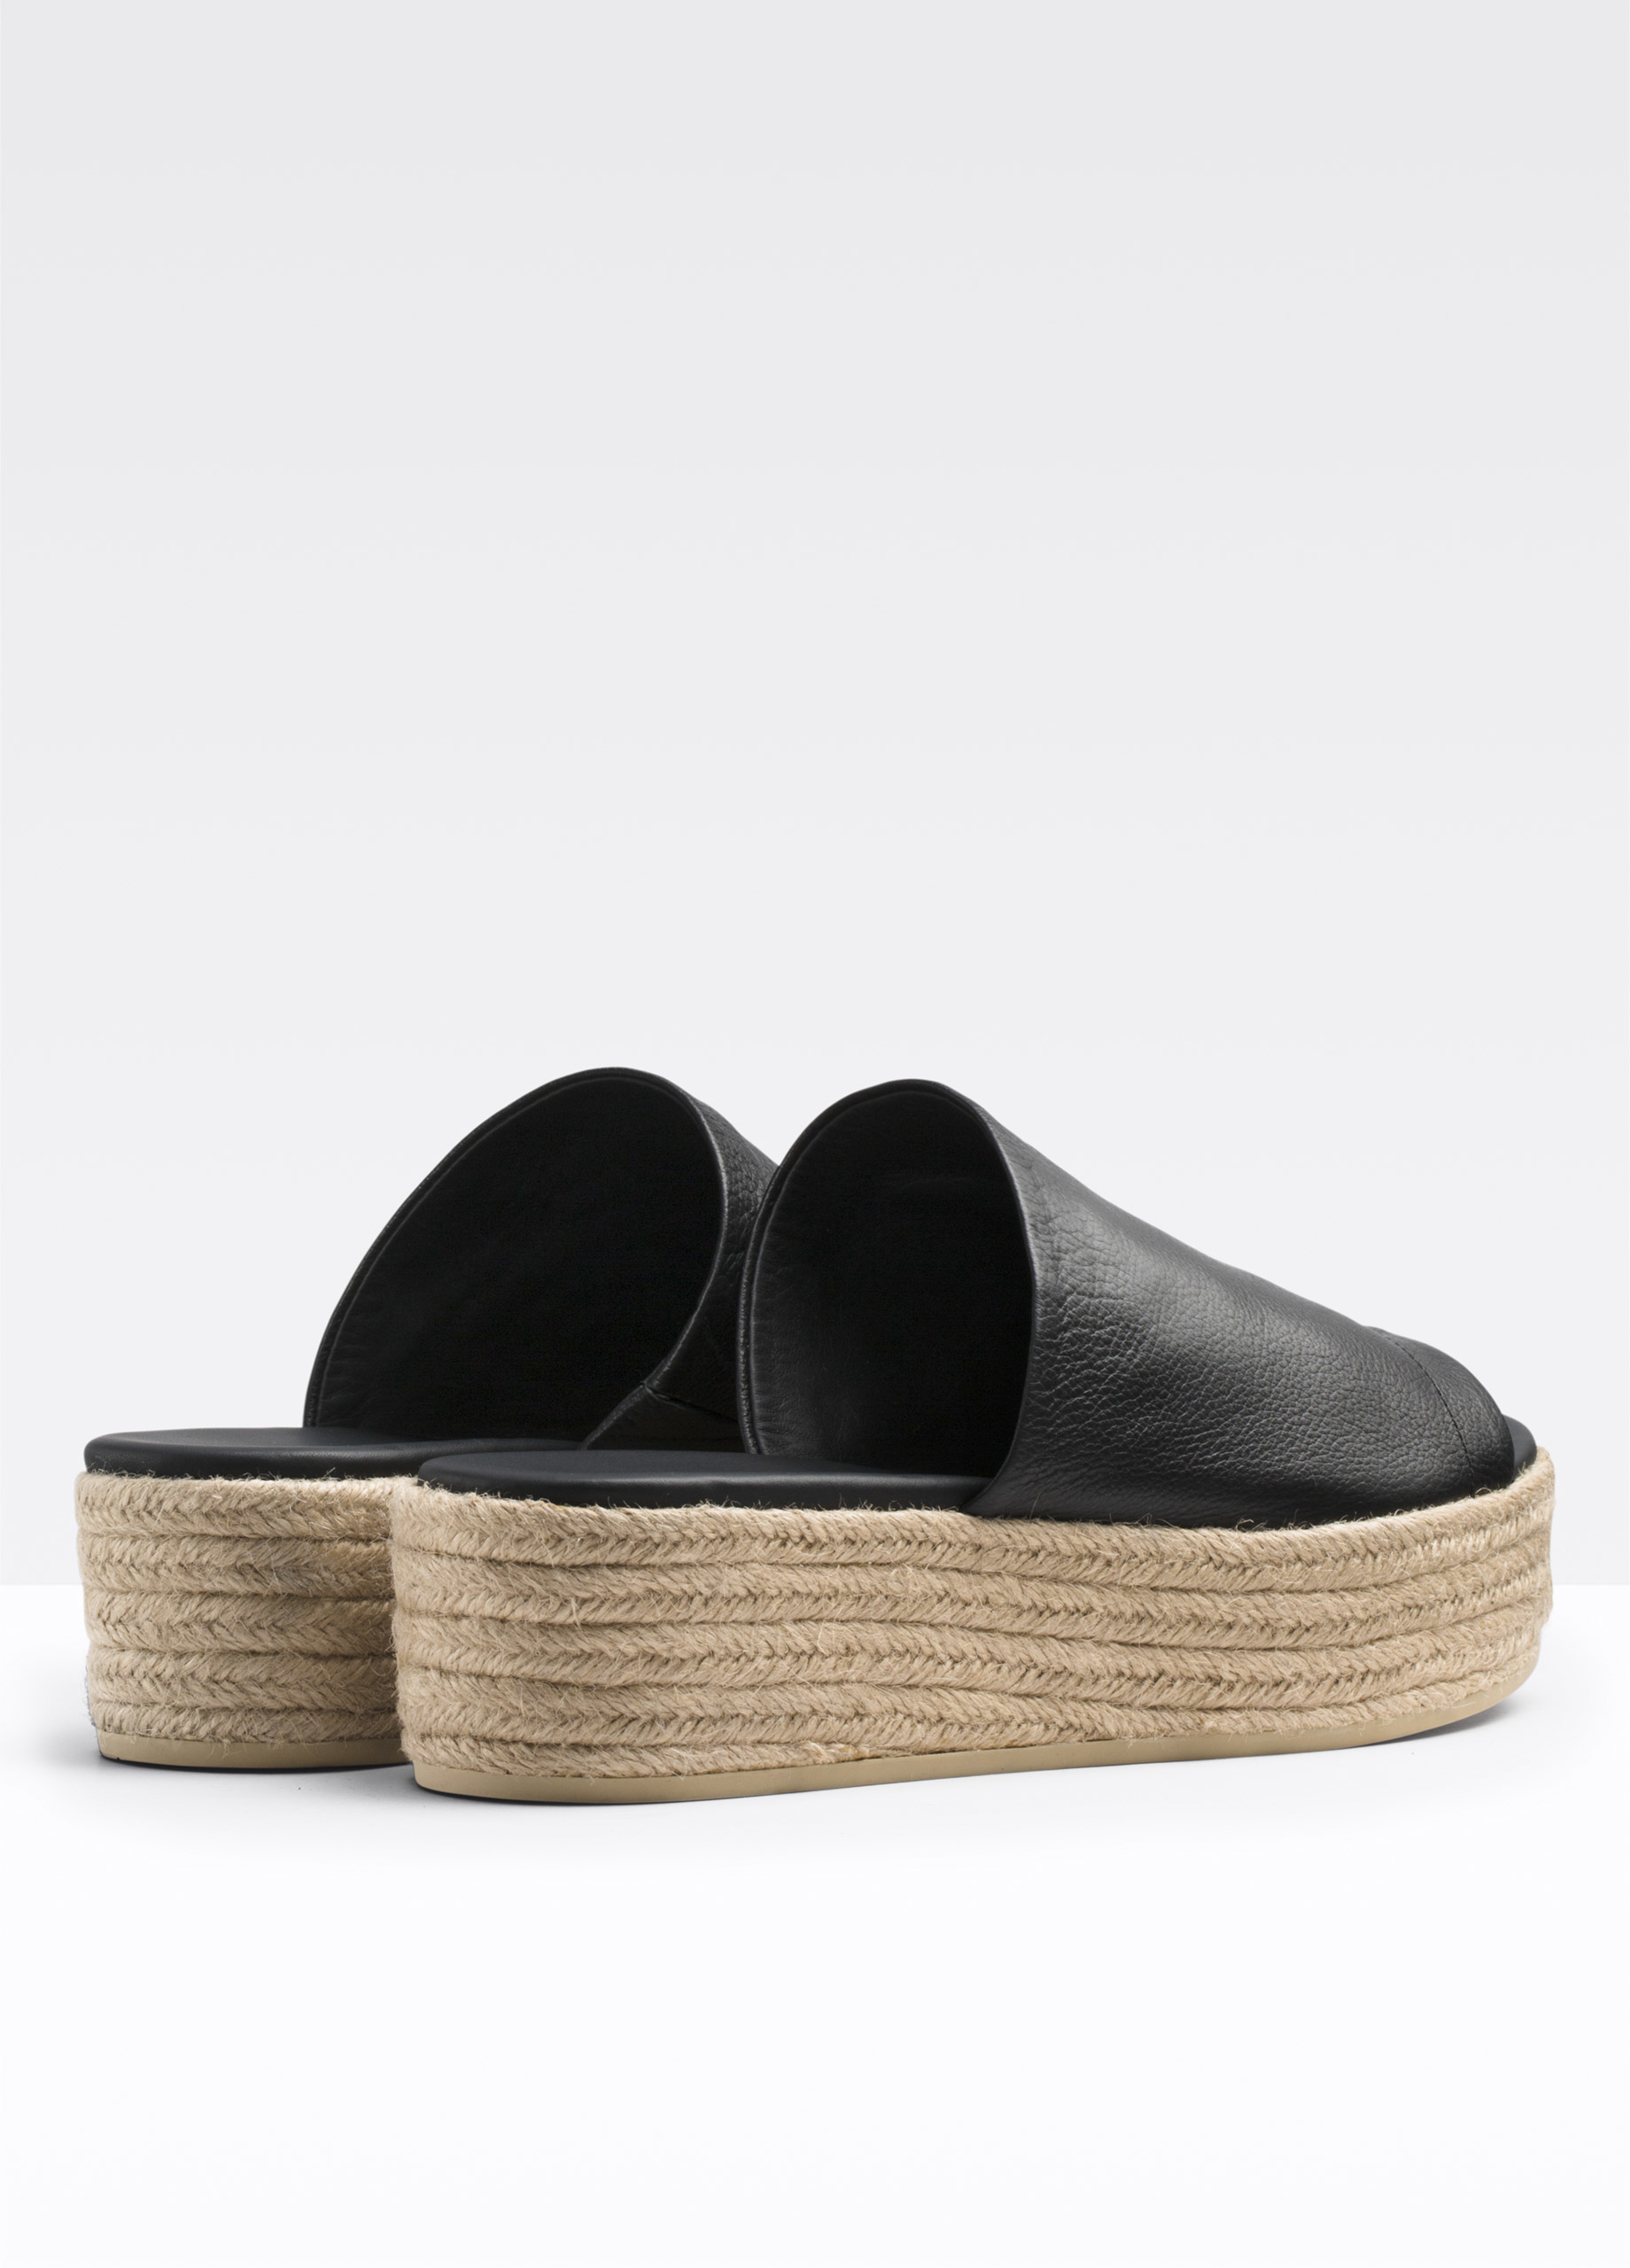 Vince Solana Leather Espadrille Flatform Sandal In Black